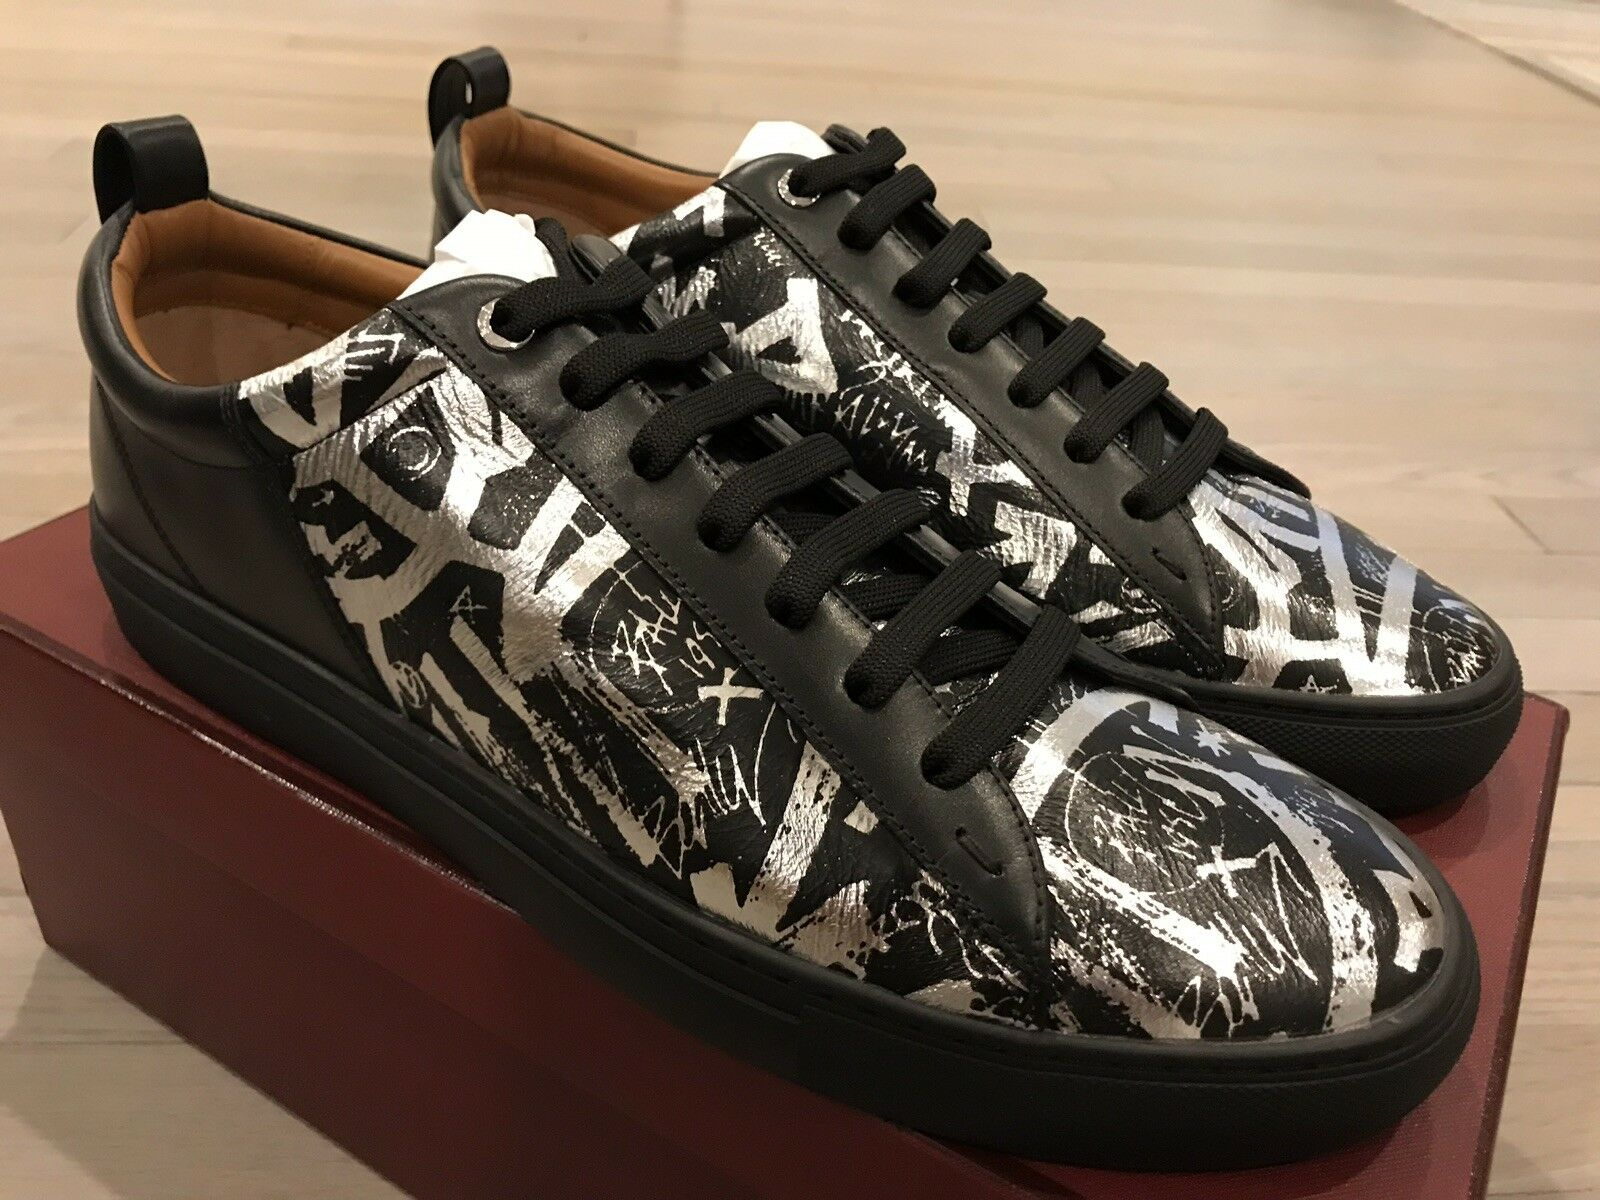 600  Bally Herbi Limited Edition Black With Silver Leather Sneakers size US 12